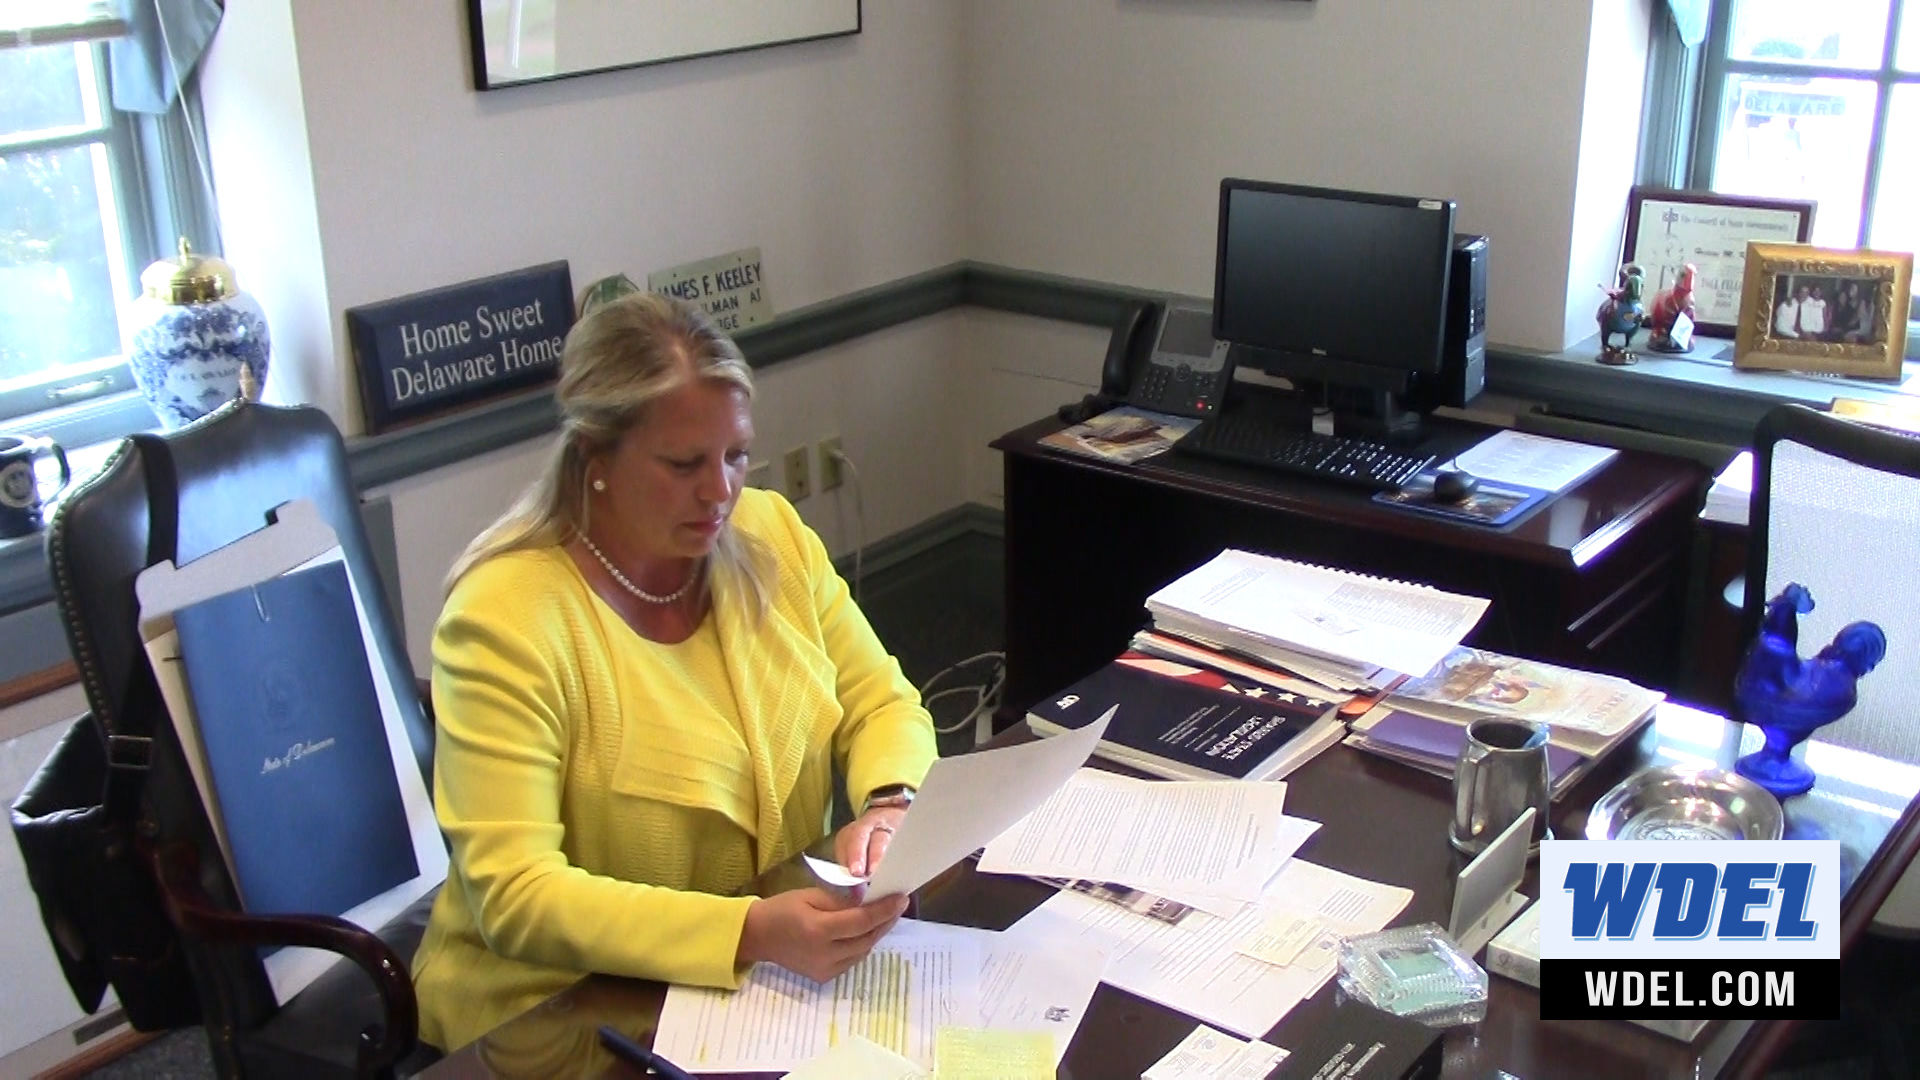 VIDEO | 'It's time': Representative Helene Keeley explains her decision to retire after 22 years in Dover | WDEL